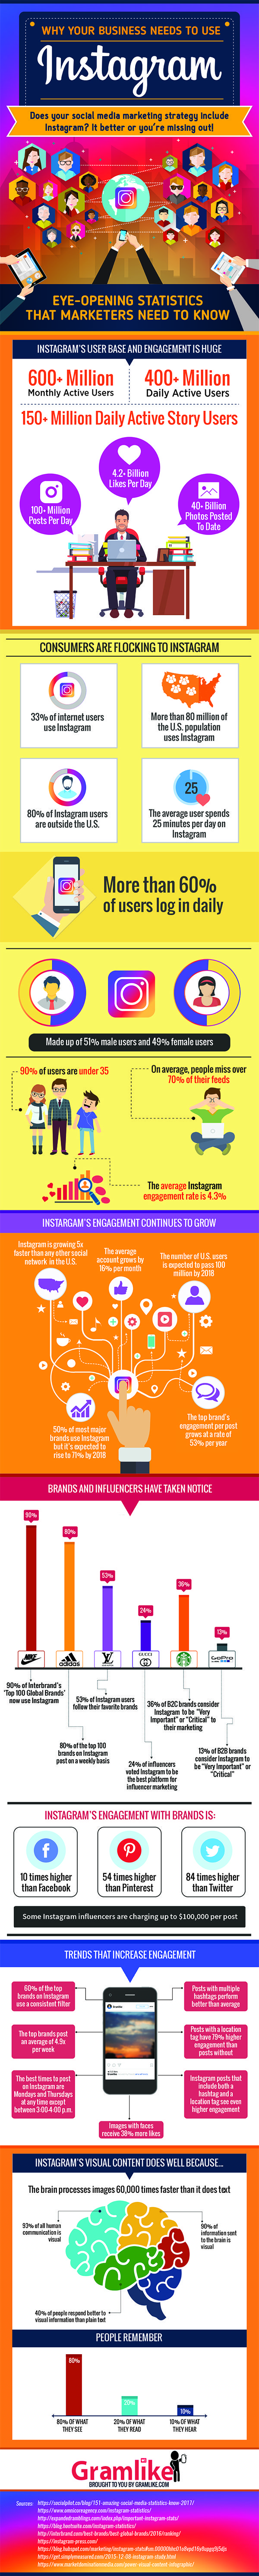 Why Your Business Needs to Use Instagram in 2017 [Infographic] | Social Media Today